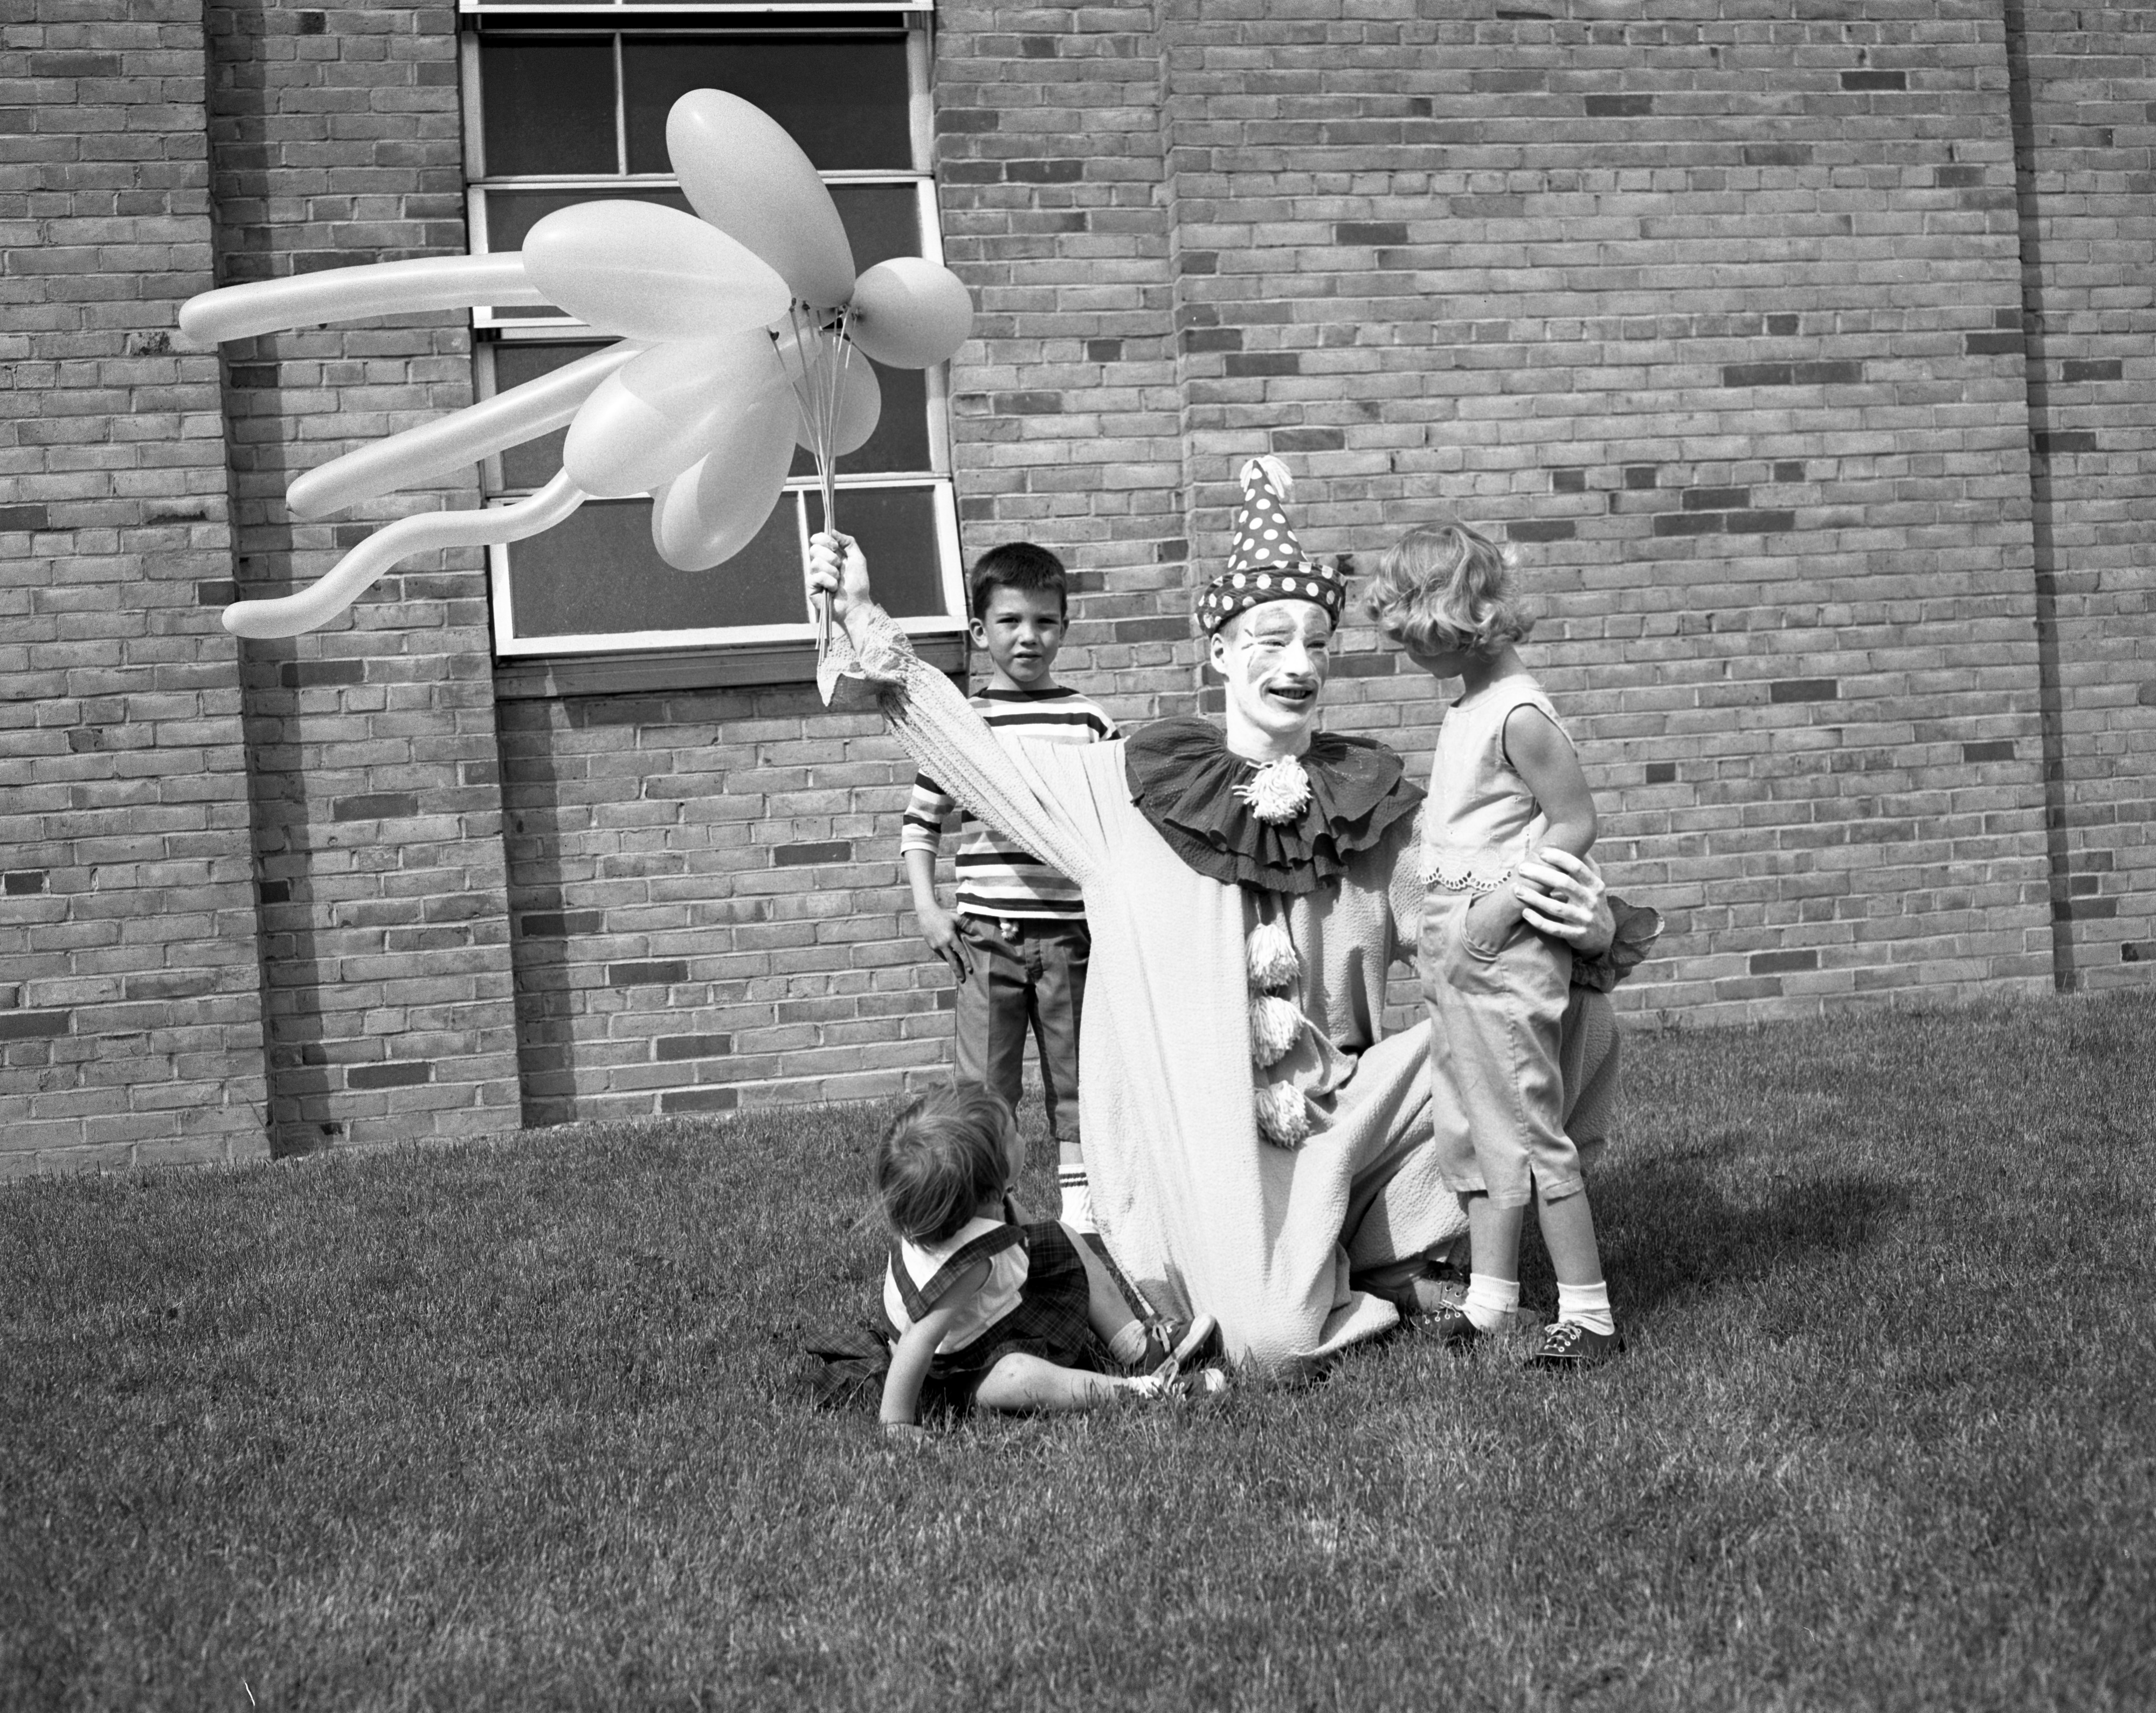 Clown At St. Francis Of Assisi Children's Carnival, June 1961 image